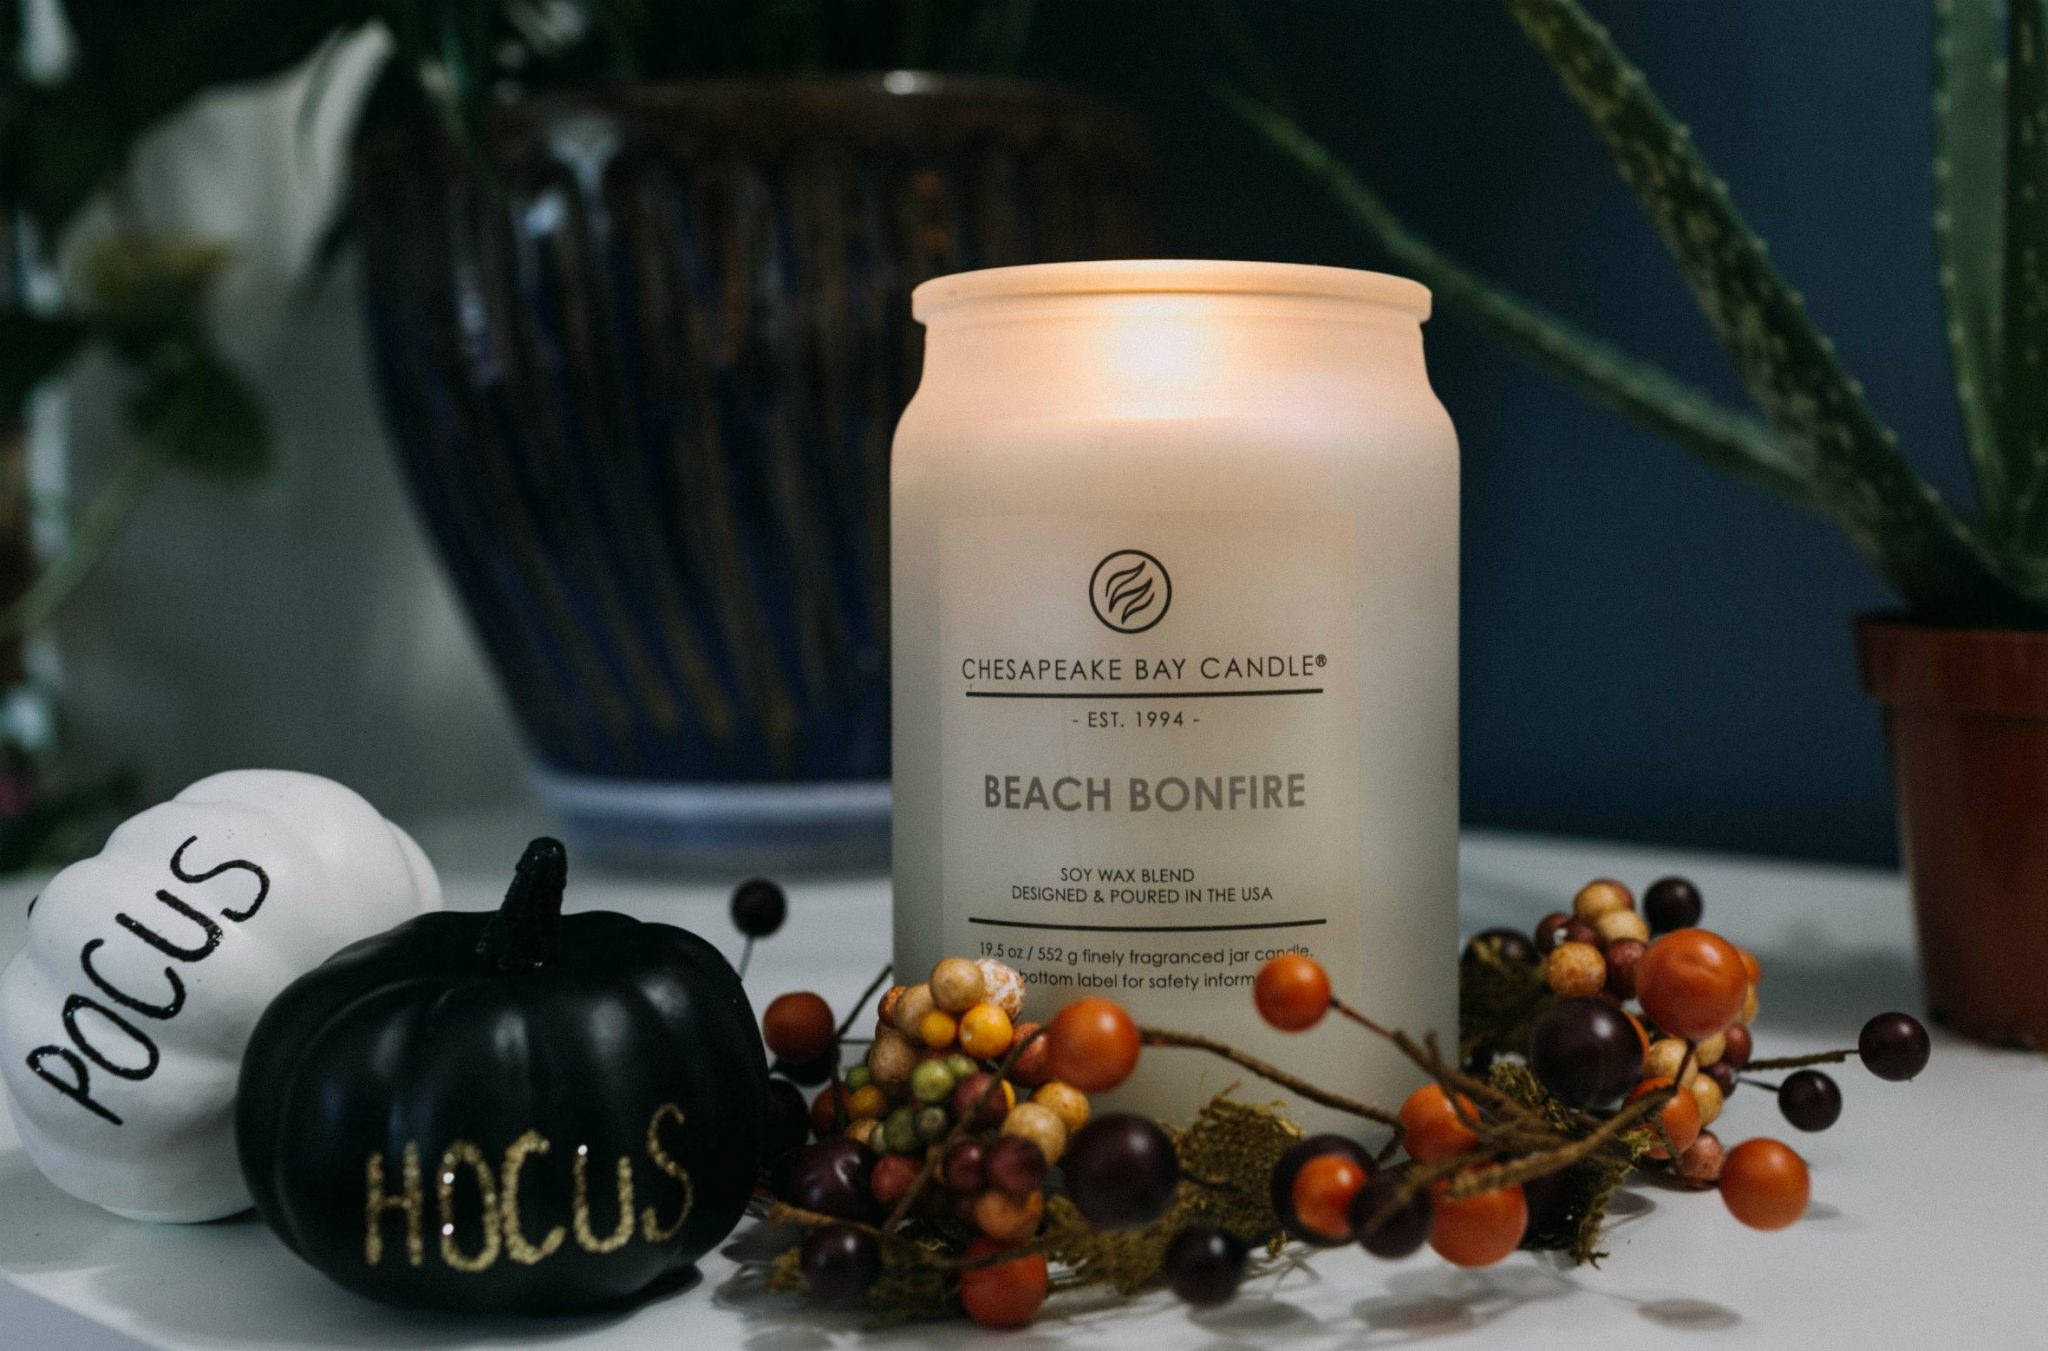 Chesapeake Bay Candle Heritage Collection Beach bonfire fragrance review